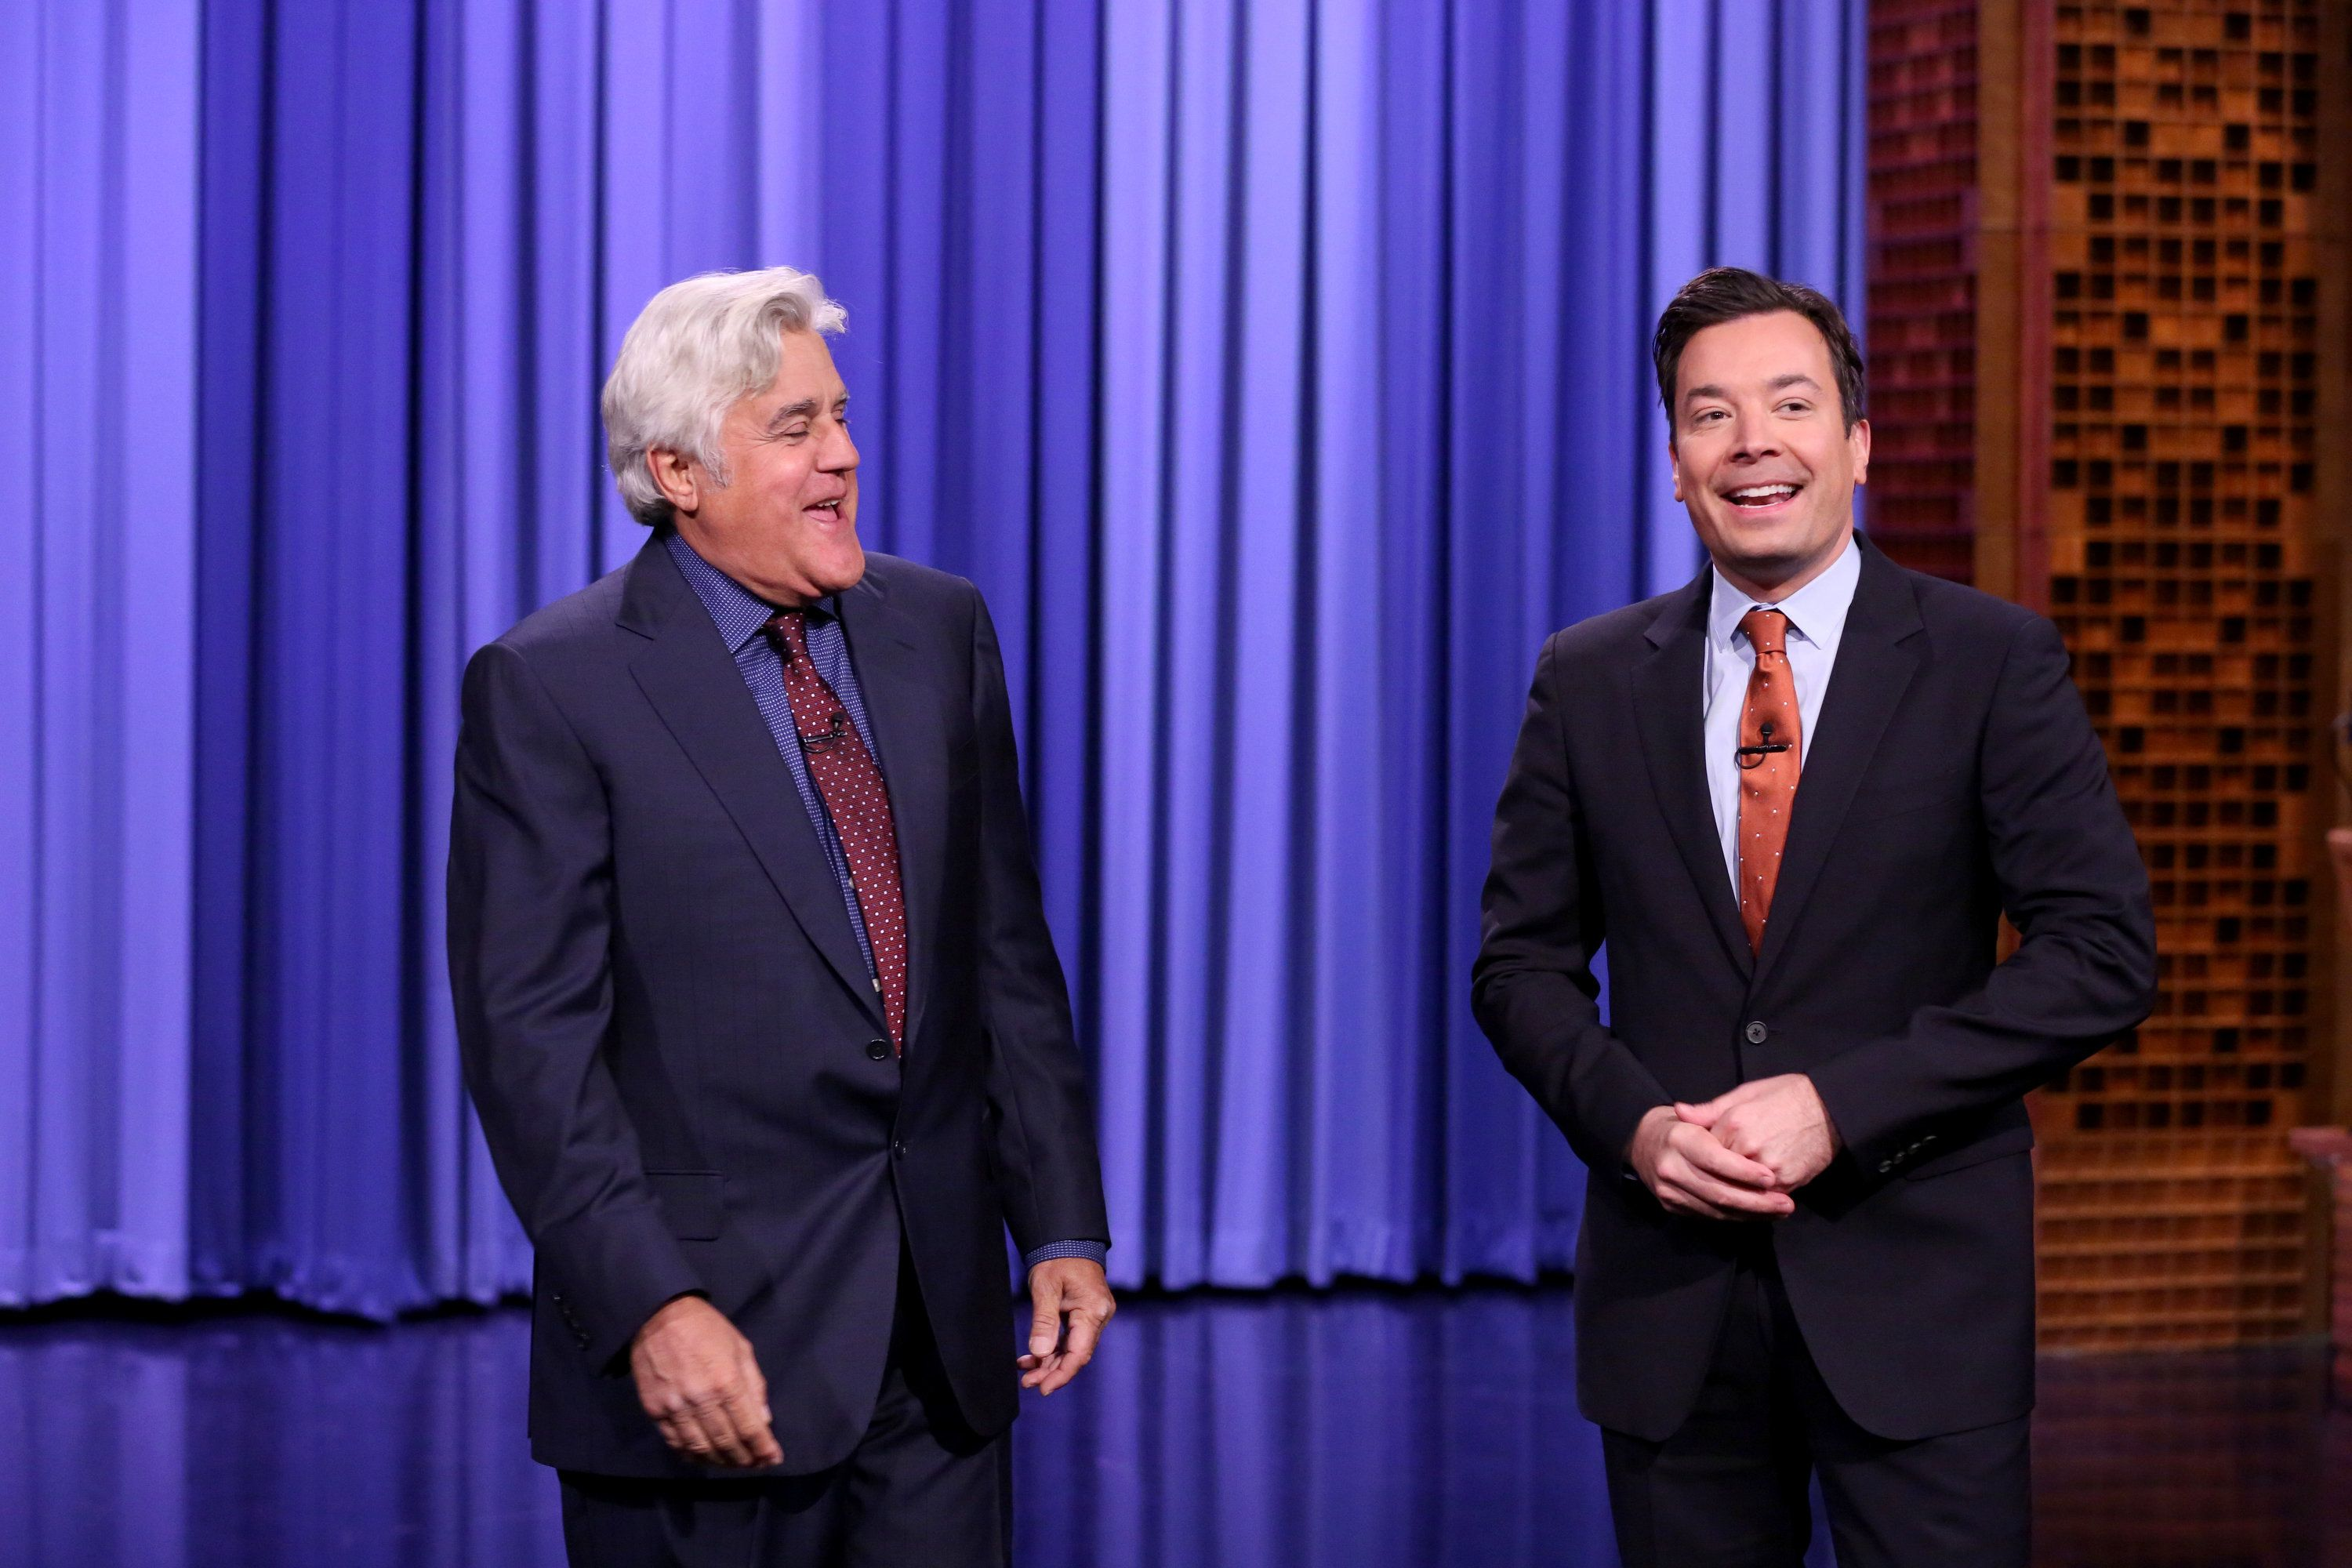 THE TONIGHT SHOW STARRING JIMMY FALLON -- Episode 0561 -- Pictured: (l-r) Comedian Jay Leno and host Jimmy Fallon during the opening monologue on October 31, 2016 -- (Photo by: Andrew Lipovsky/NBC/NBCU Photo Bank via Getty Images)